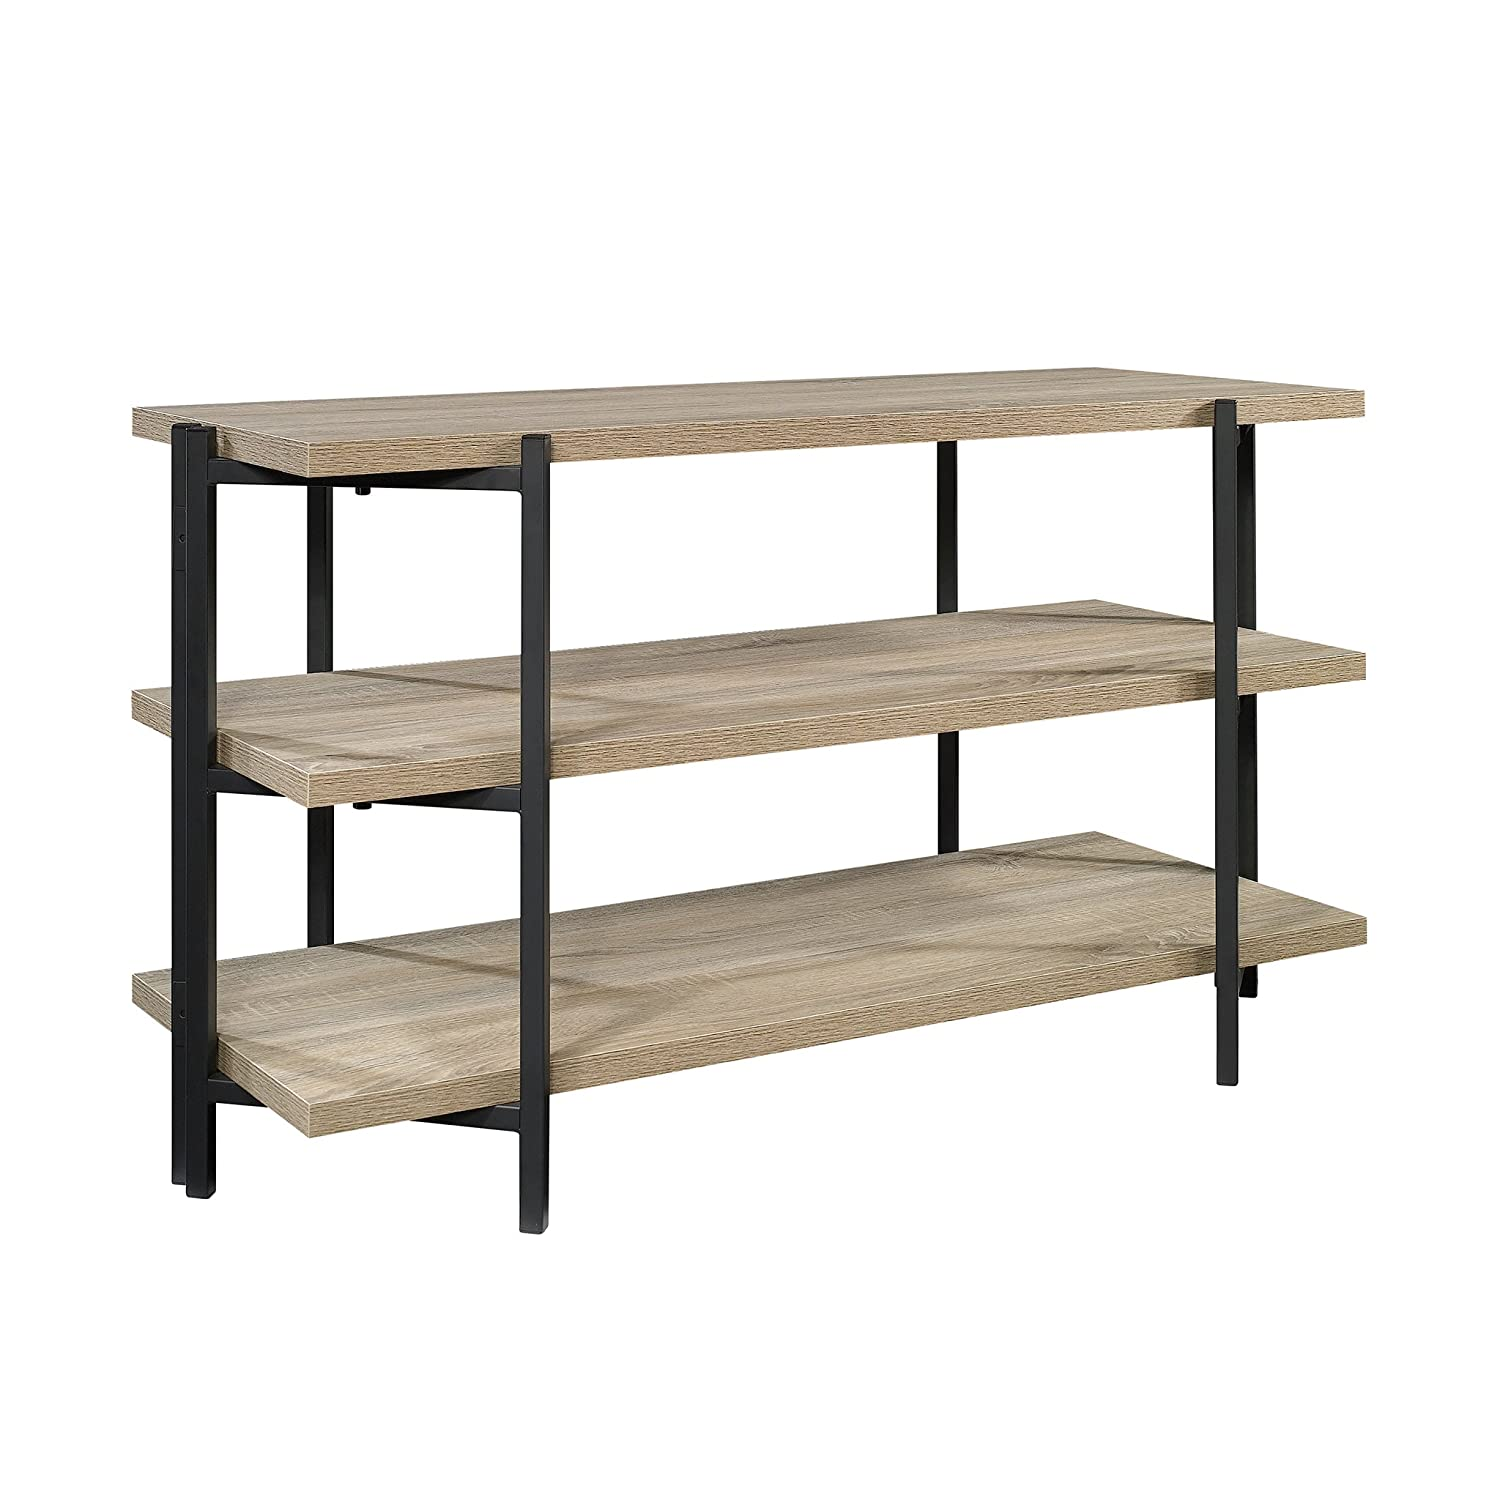 Sauder North Avenue Console, For TV s up to 42 , Charter Oak finish